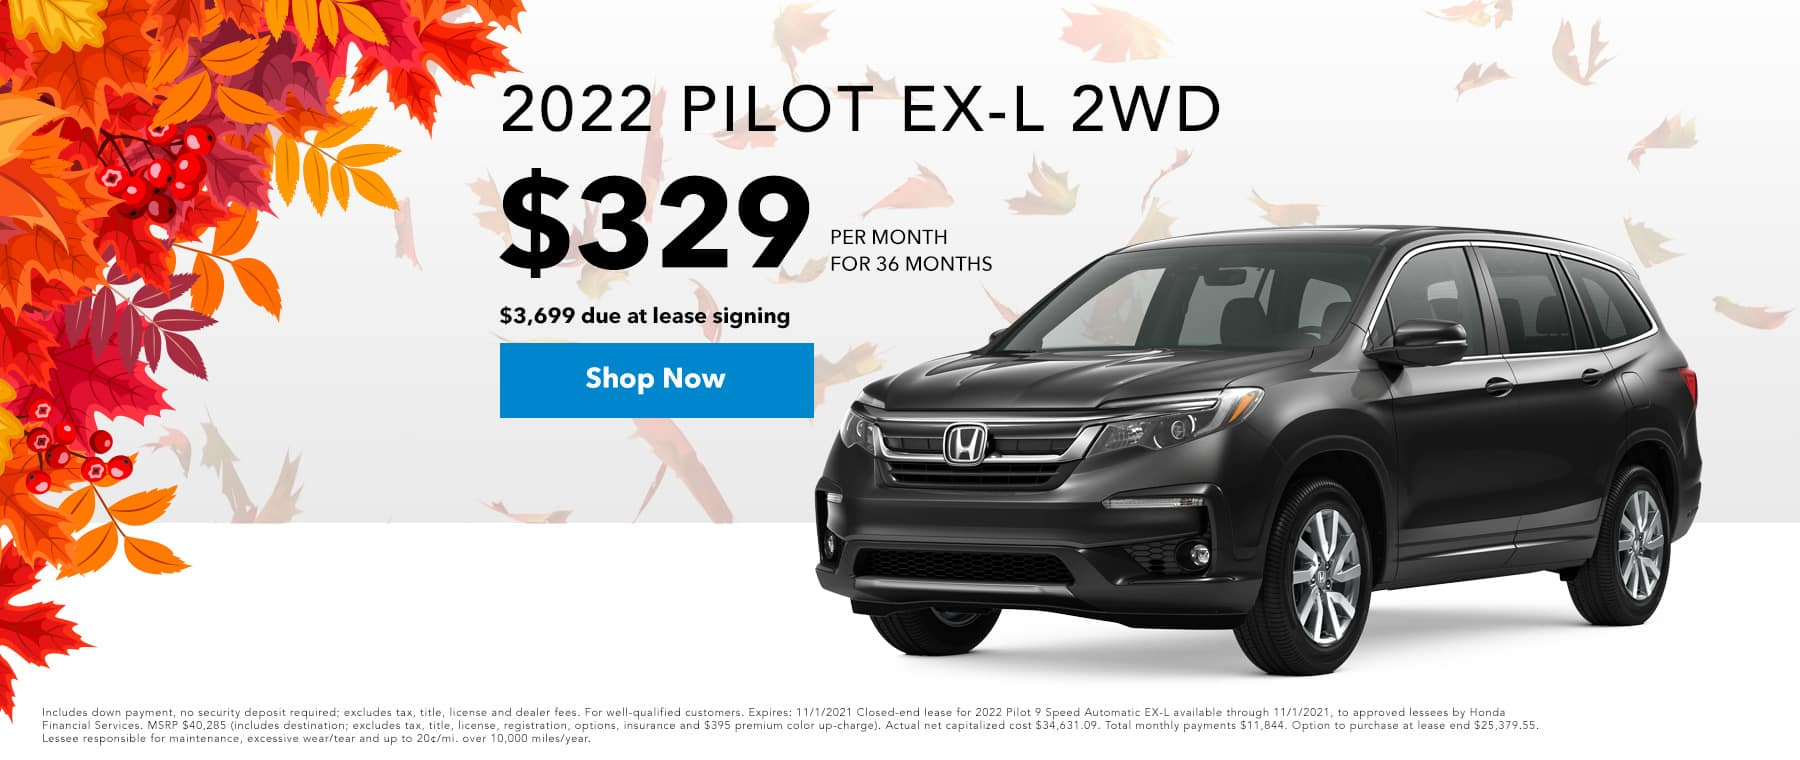 2022 Pilot EX-L 2WD, $329 PER MONTH FOR 36 MONTHS $3,699 DUE AT SIGNING